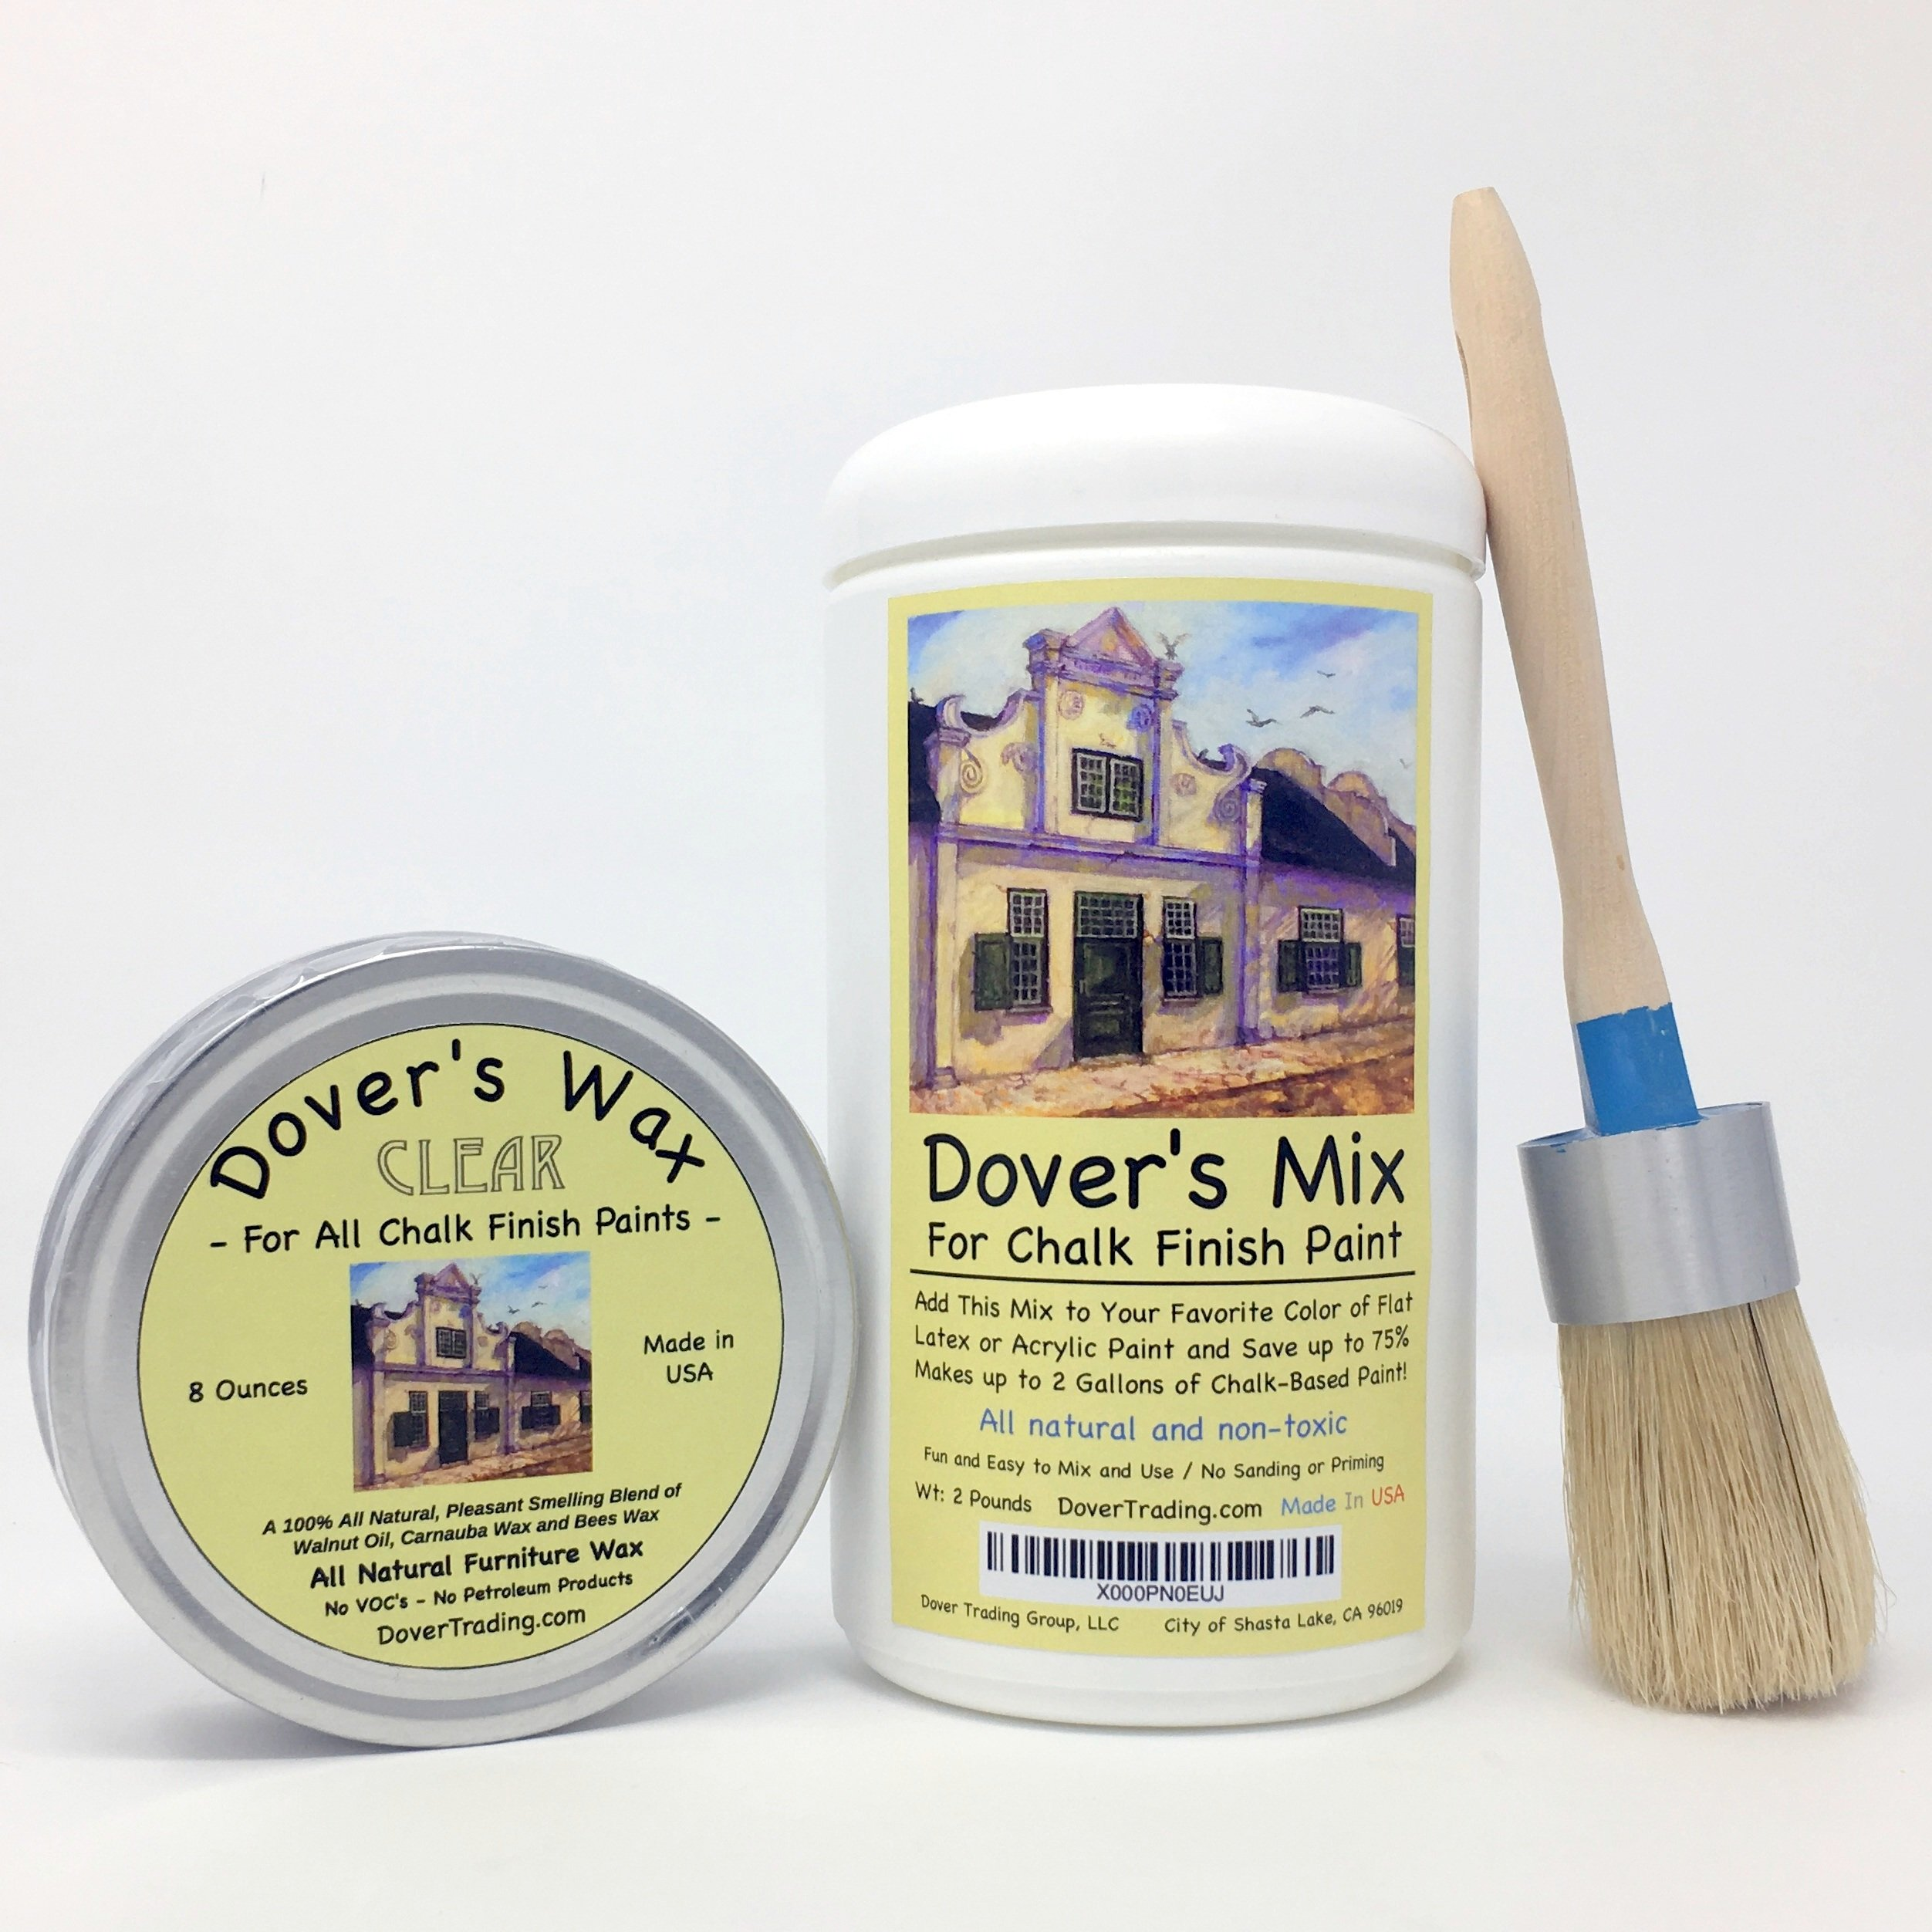 "Chalk Paint and Wax Brush by Dover's has a MEDIUM Flat Oval Head (2""x1.25"") of Natural Boar Hair Bristles Set in Epoxy in a Rust-Proof Band for Maximum Paint Holding and Minimal Stroke Marks"